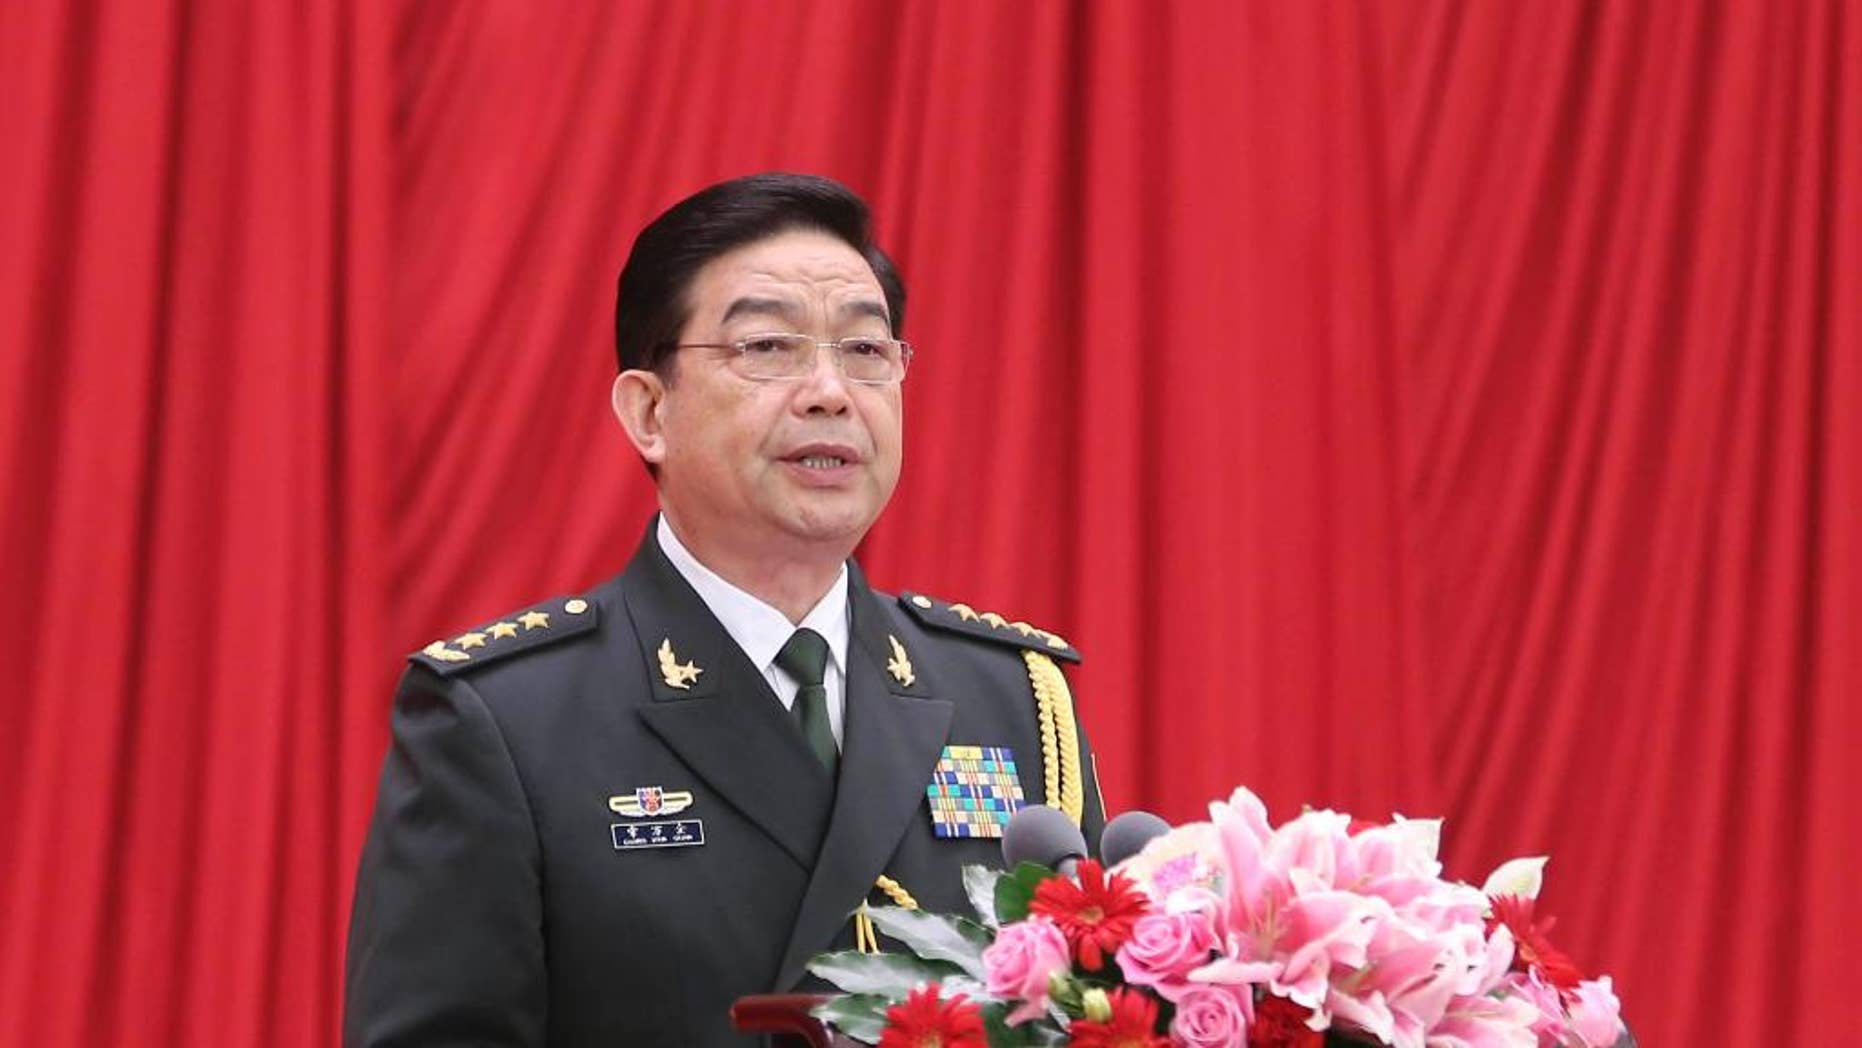 """In this Sunday, July 31, 2016 photo released by China's Xinhua News Agency, Chinese Defense Minister Chang Wanquan addresses a reception held by the Ministry of National Defense to celebrate the 89th anniversary of the founding of the Chinese People's Liberation Army (PLA) in Beijing. China has reiterated its commitment to defending its sovereignty amid new tensions over its territorial and maritime claims in the South China Sea. Chang told the reception on Sunday that China would firmly safeguard its """"state sovereignty, national security and development interests."""" """"Territorial integrity and maritime rights and interests will be defended,"""" Chang was cited as saying by the official Xinhua News Agency. (Ding Lin/Xinhua News Agency via AP) NO SALES"""